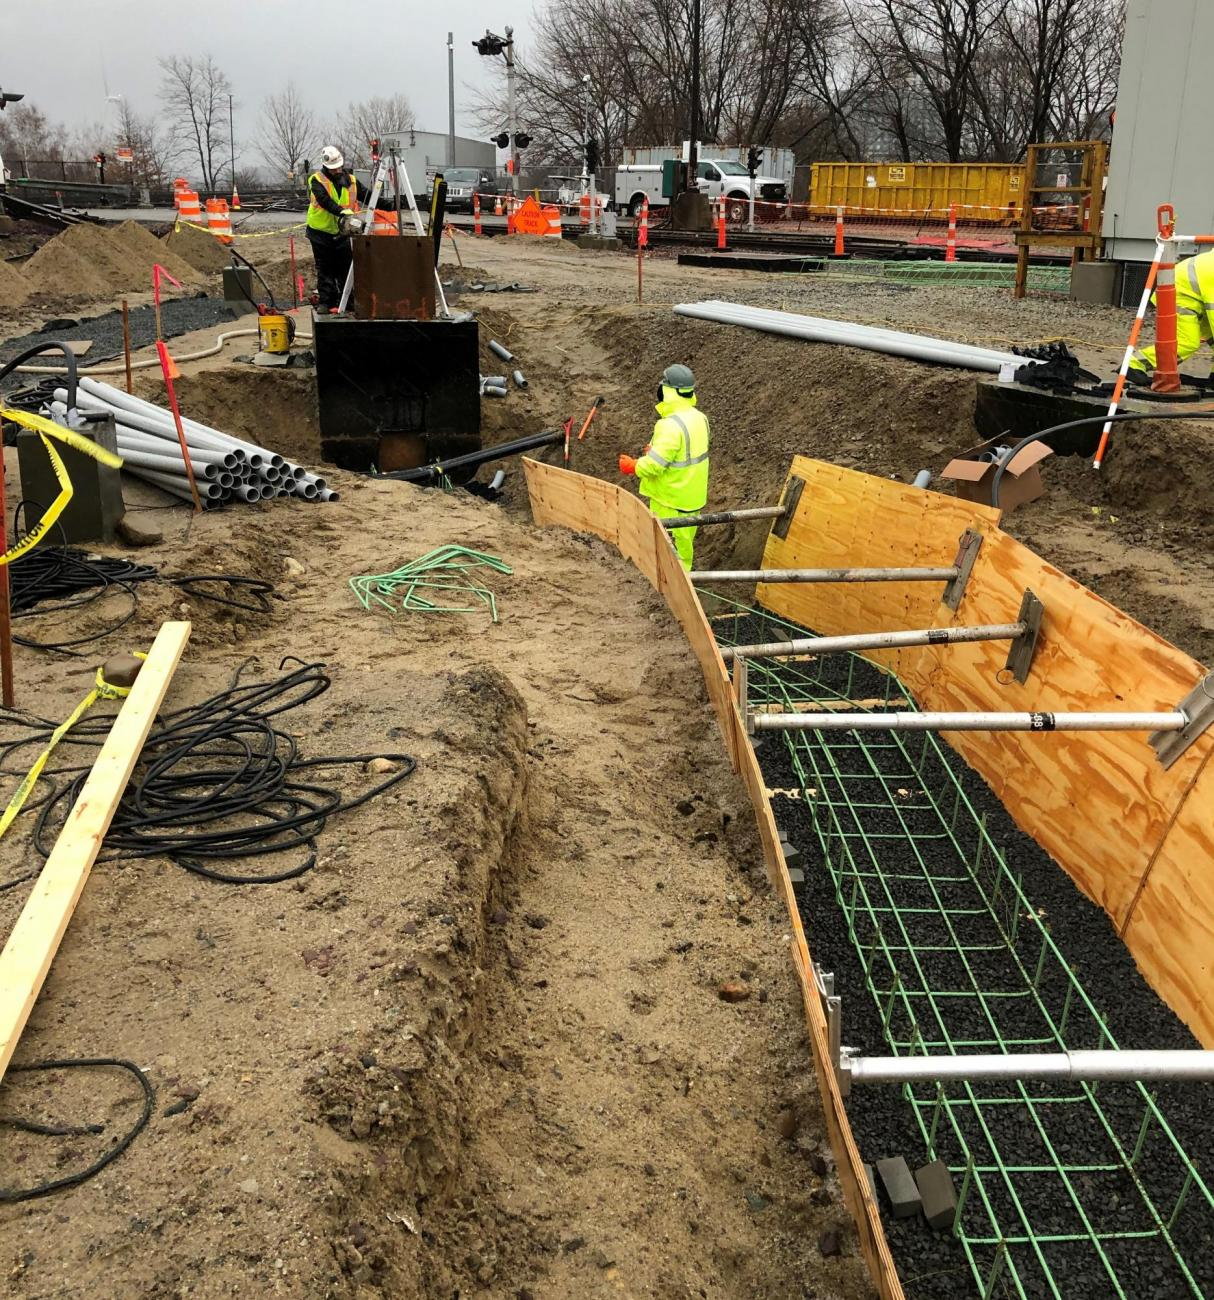 Crew members install rebar in the duct bank that will house cabling for the Wellington Maintenance Facility